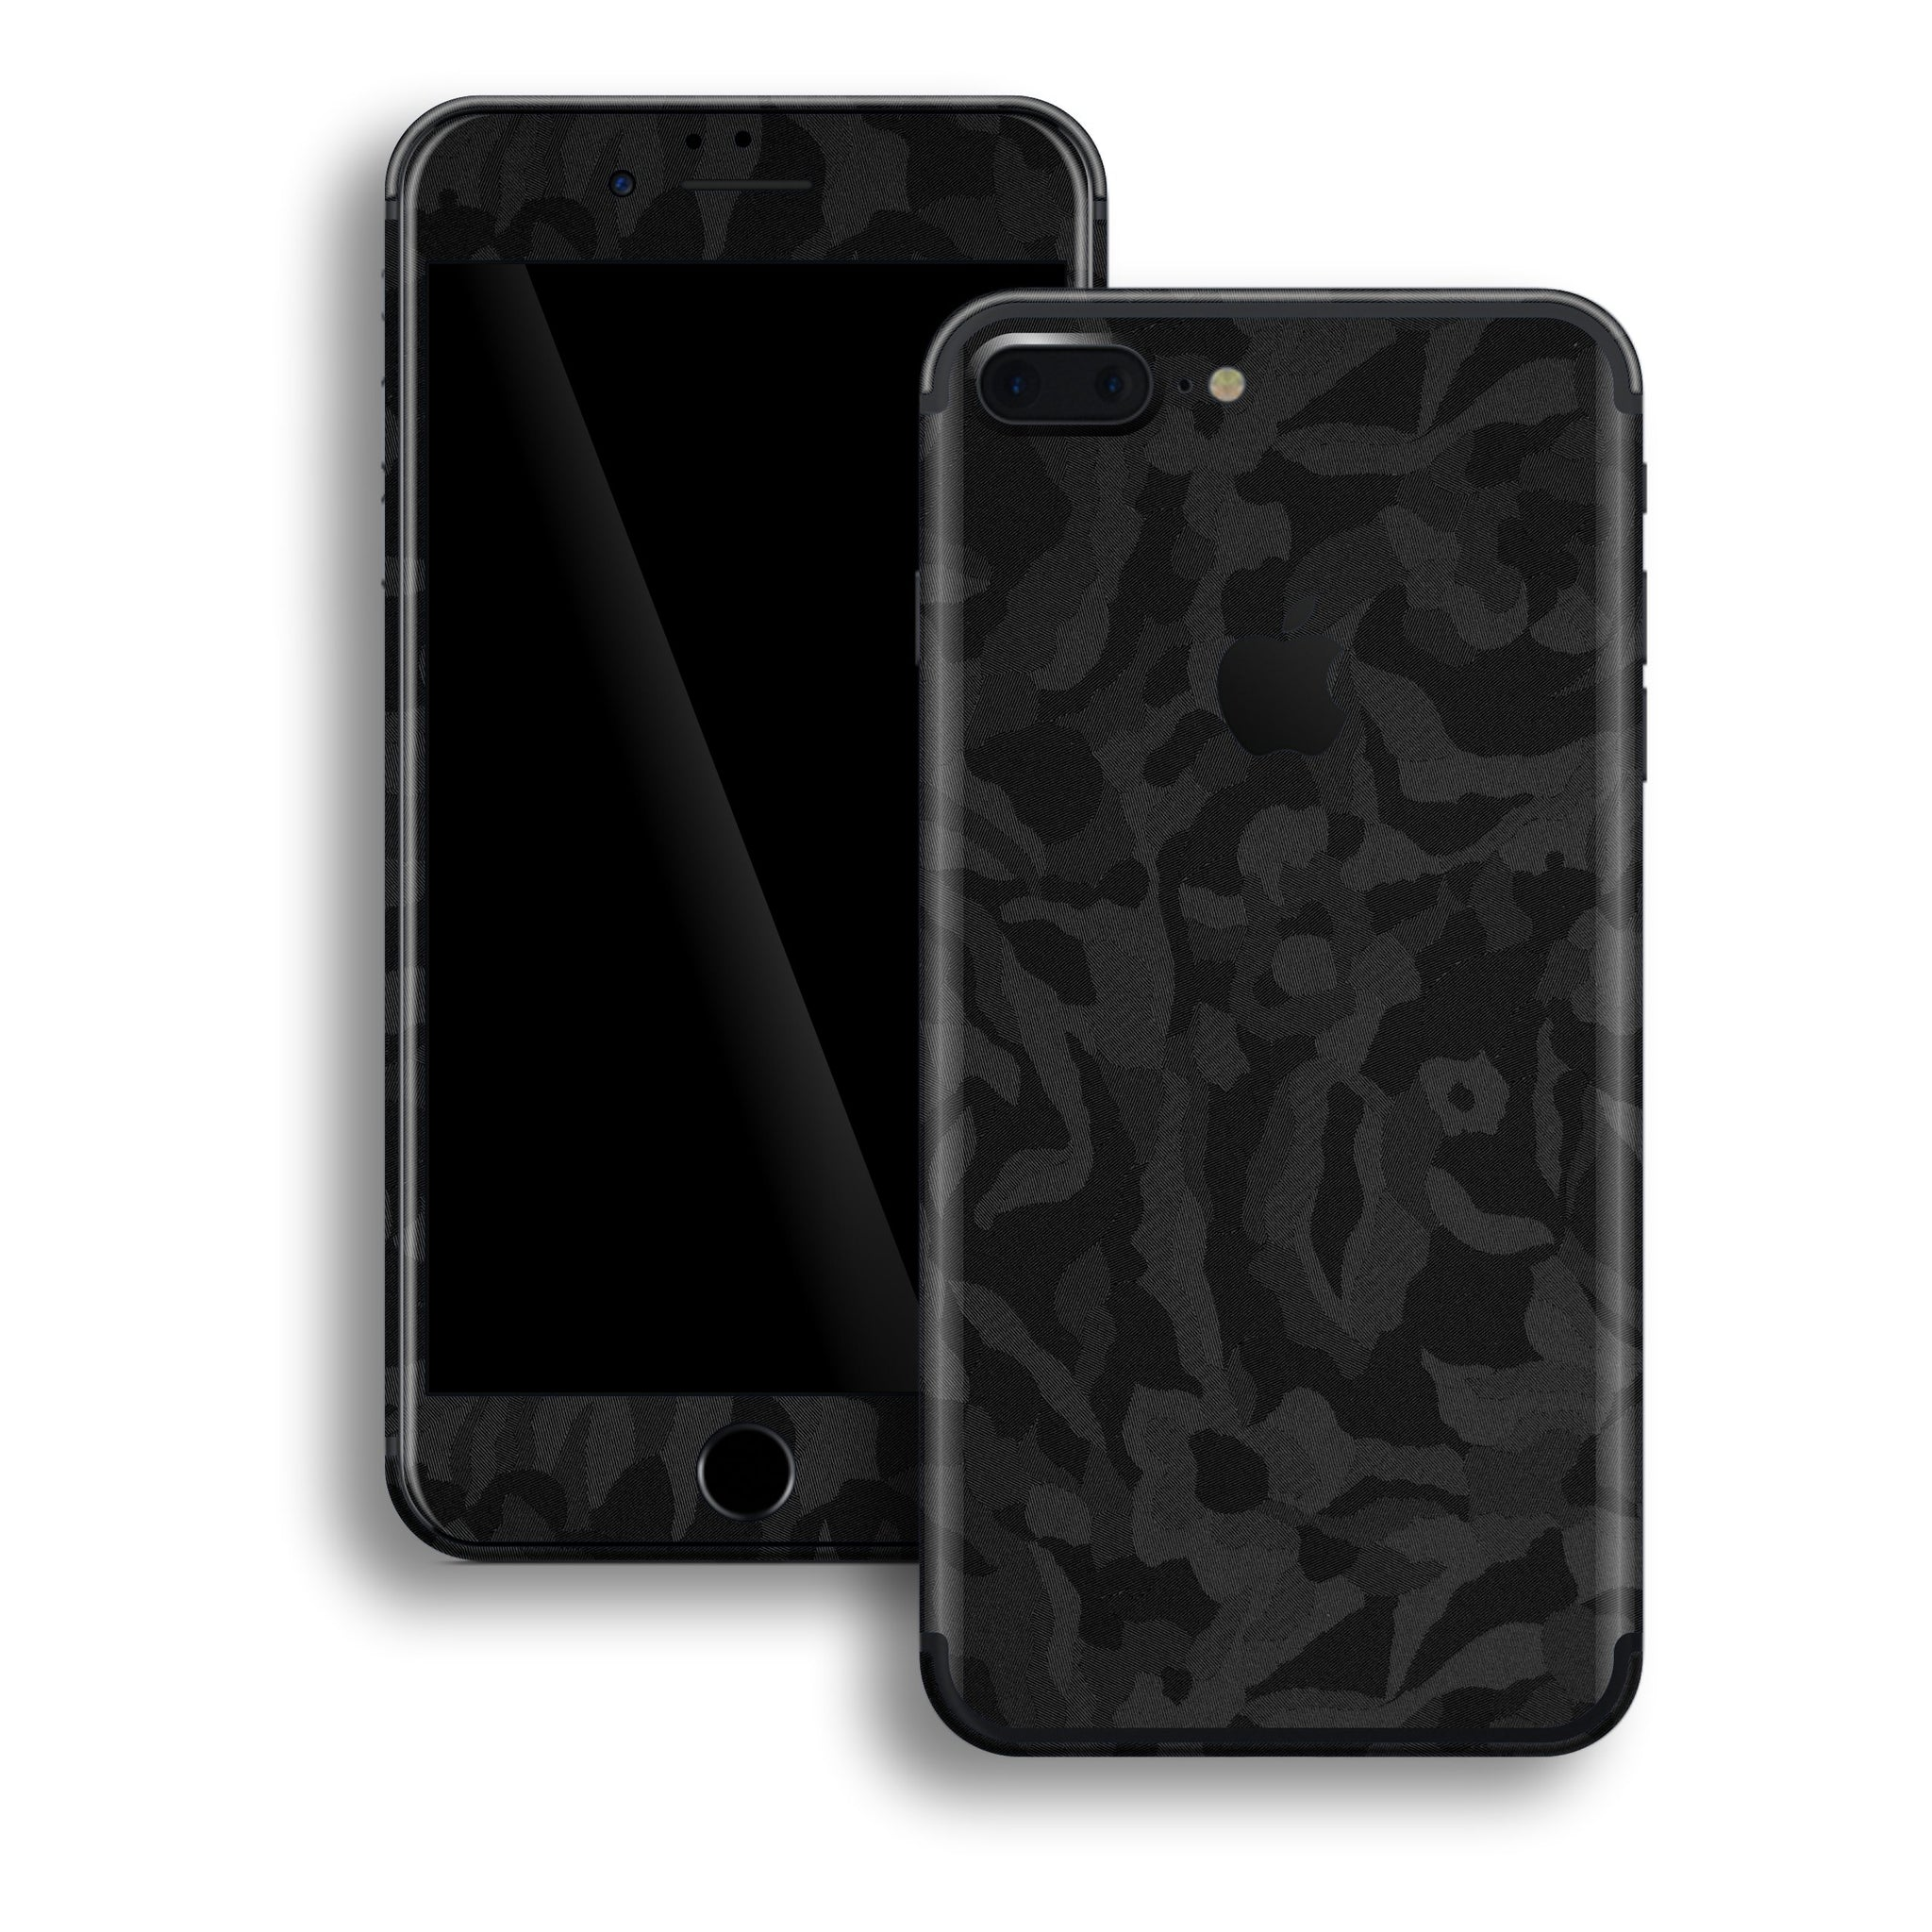 iPhone 7 PLUS Luxuria Black 3D Textured Camo Camouflage Skin Wrap Decal Protector | EasySkinz